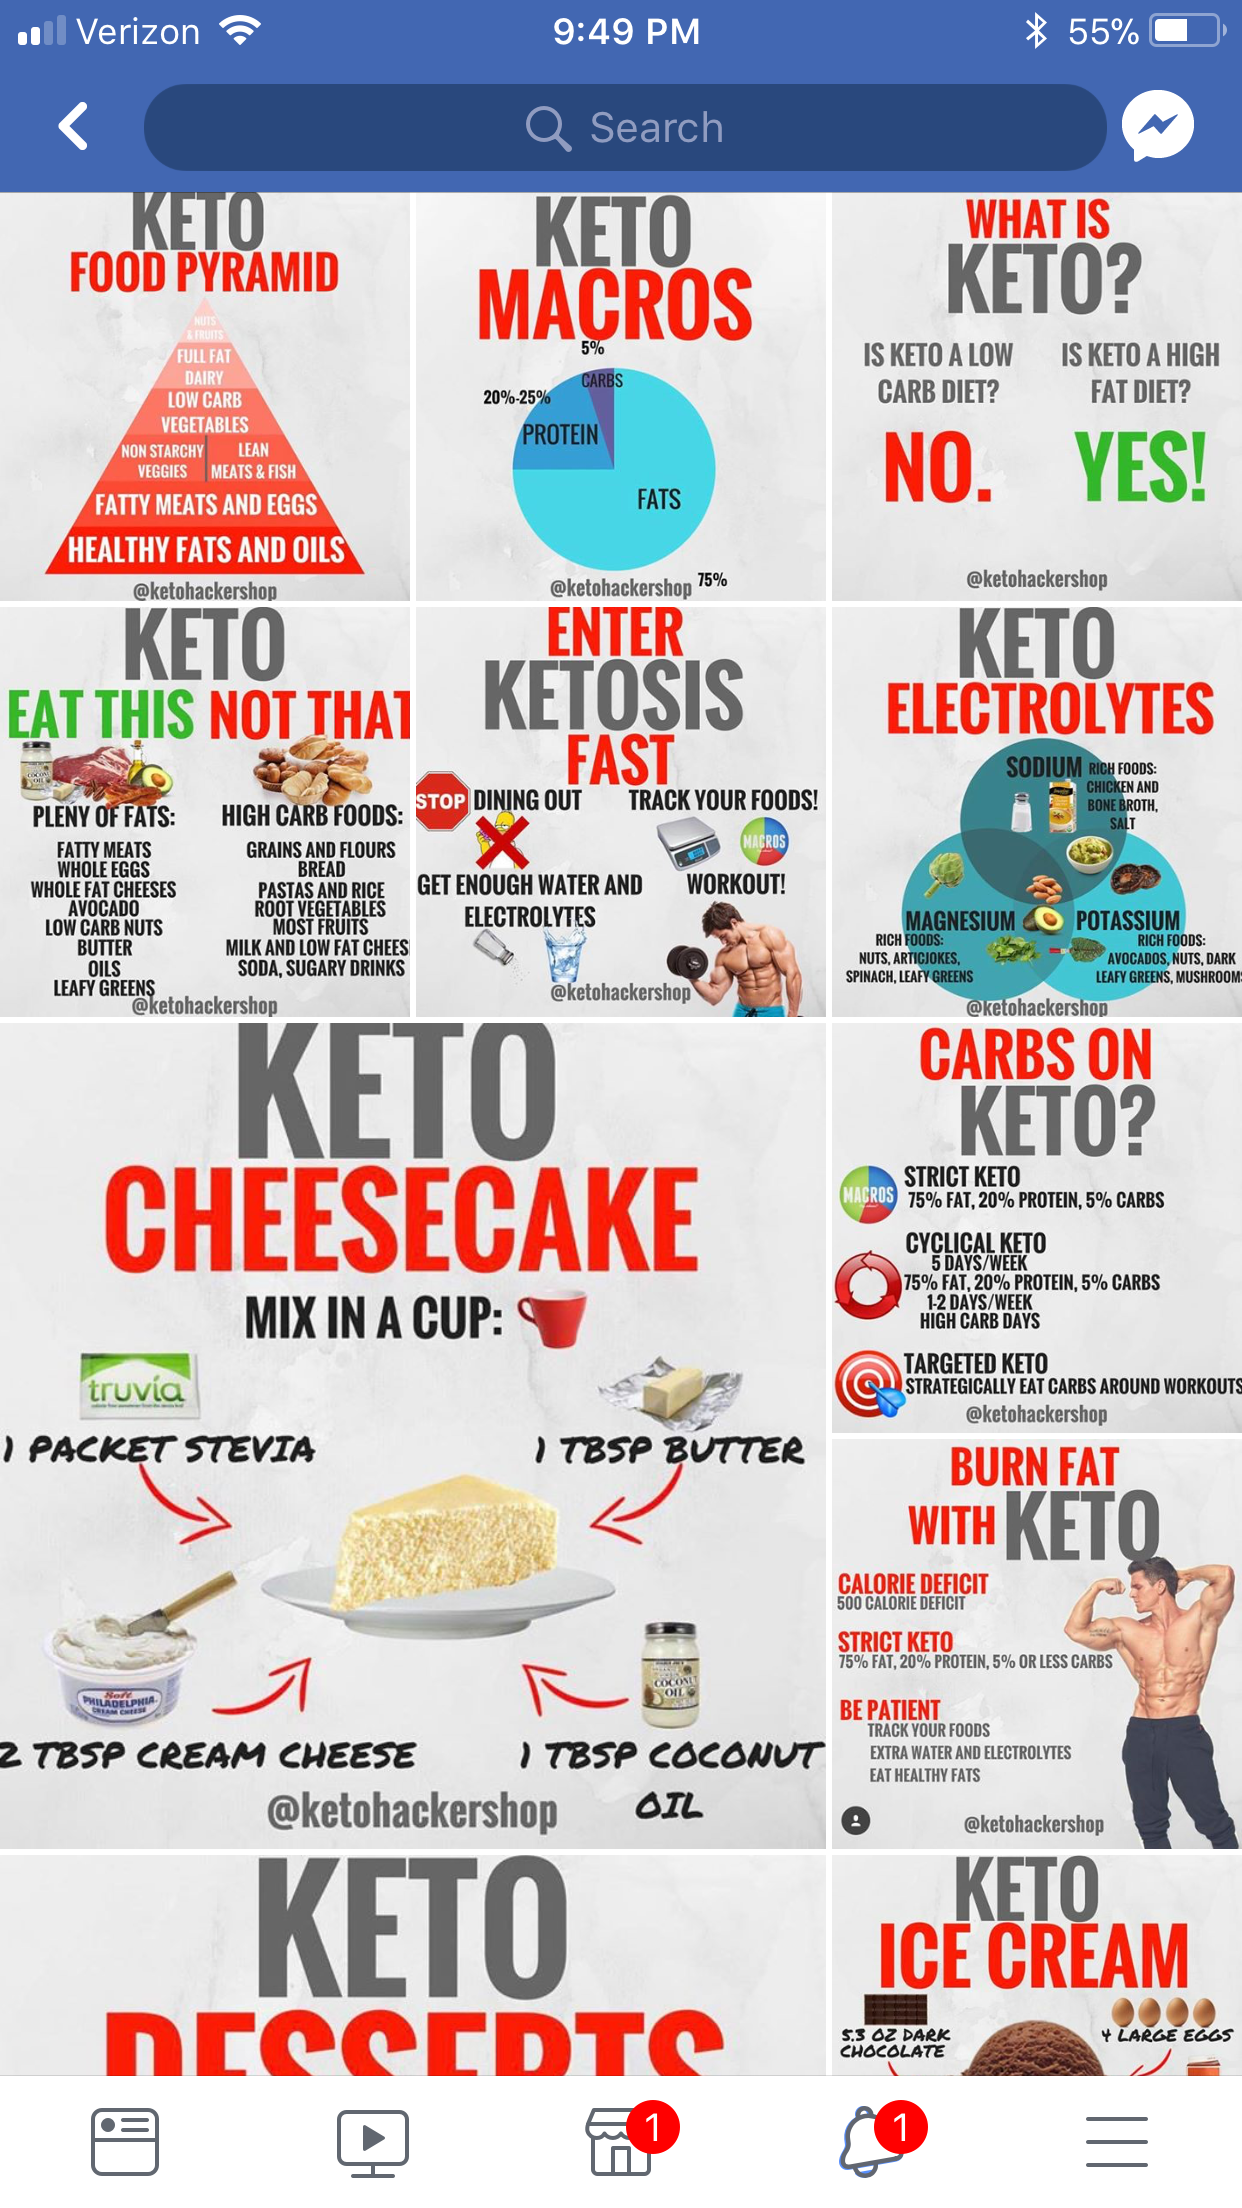 Pin By Michelle Lee On Keto Ketogenic Diet Plan Ketogenic Diet Meal Plan Ketogenic Diet Cancer